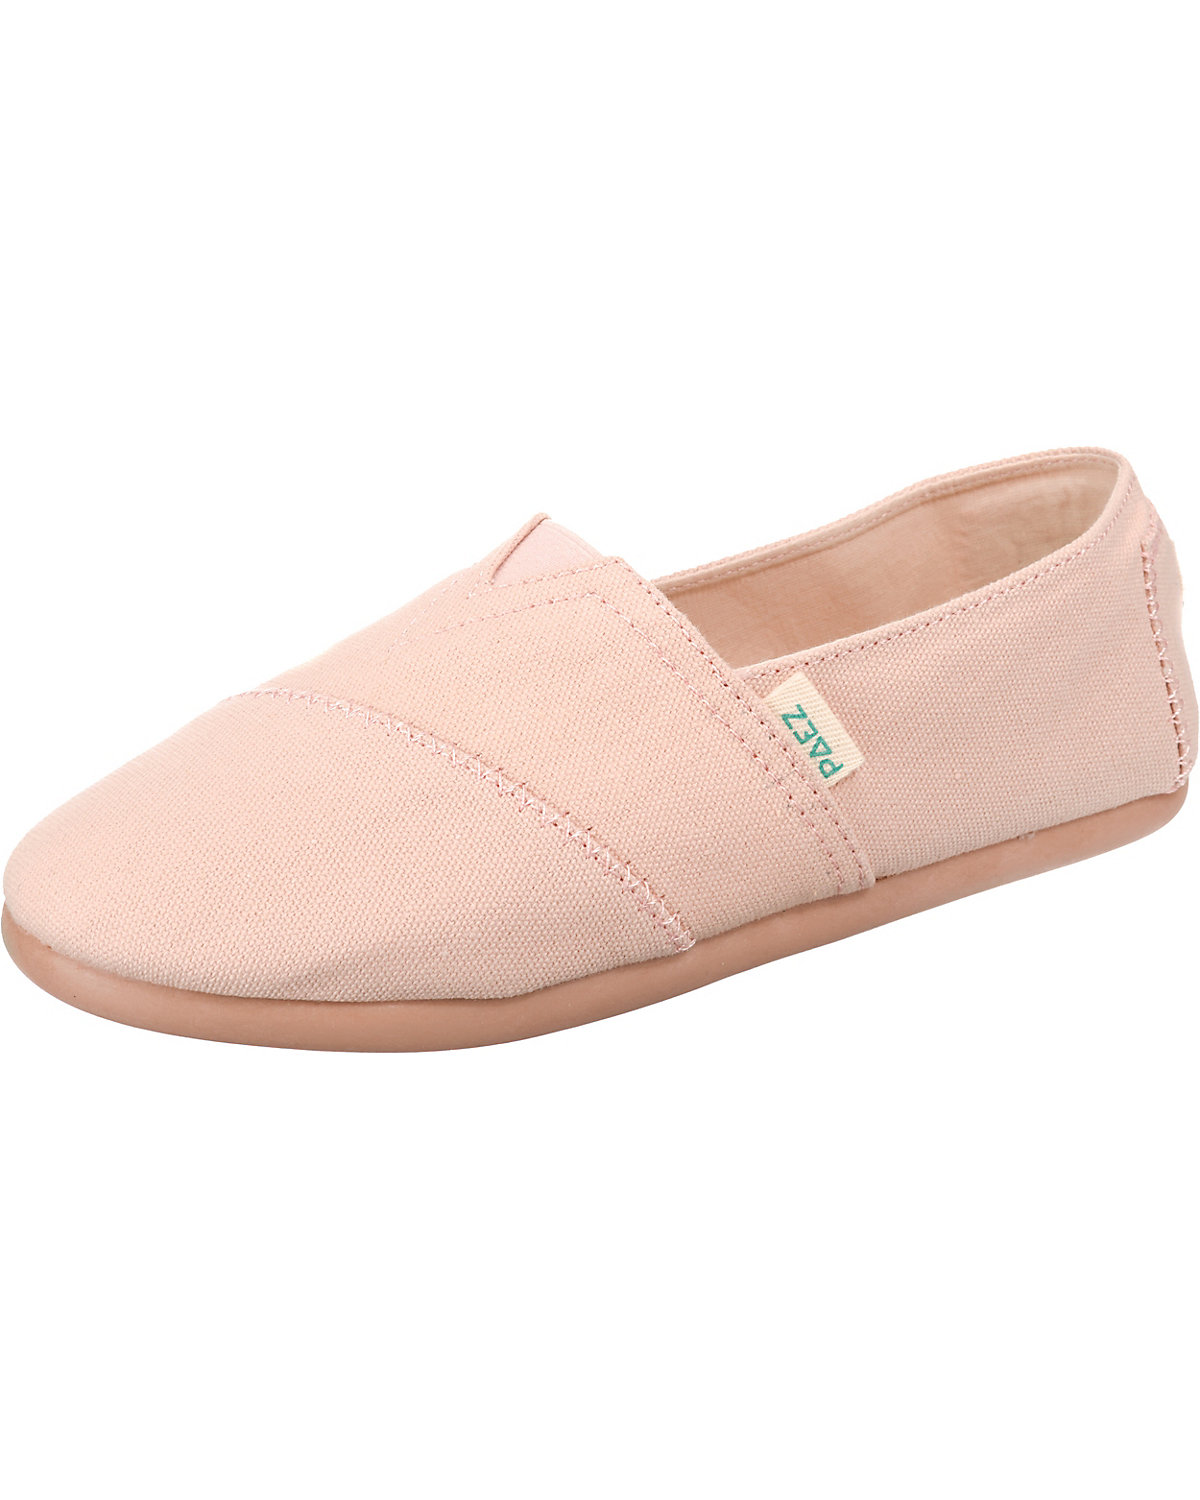 paez, Original Classic Color Block Sportliche Slipper, rosa